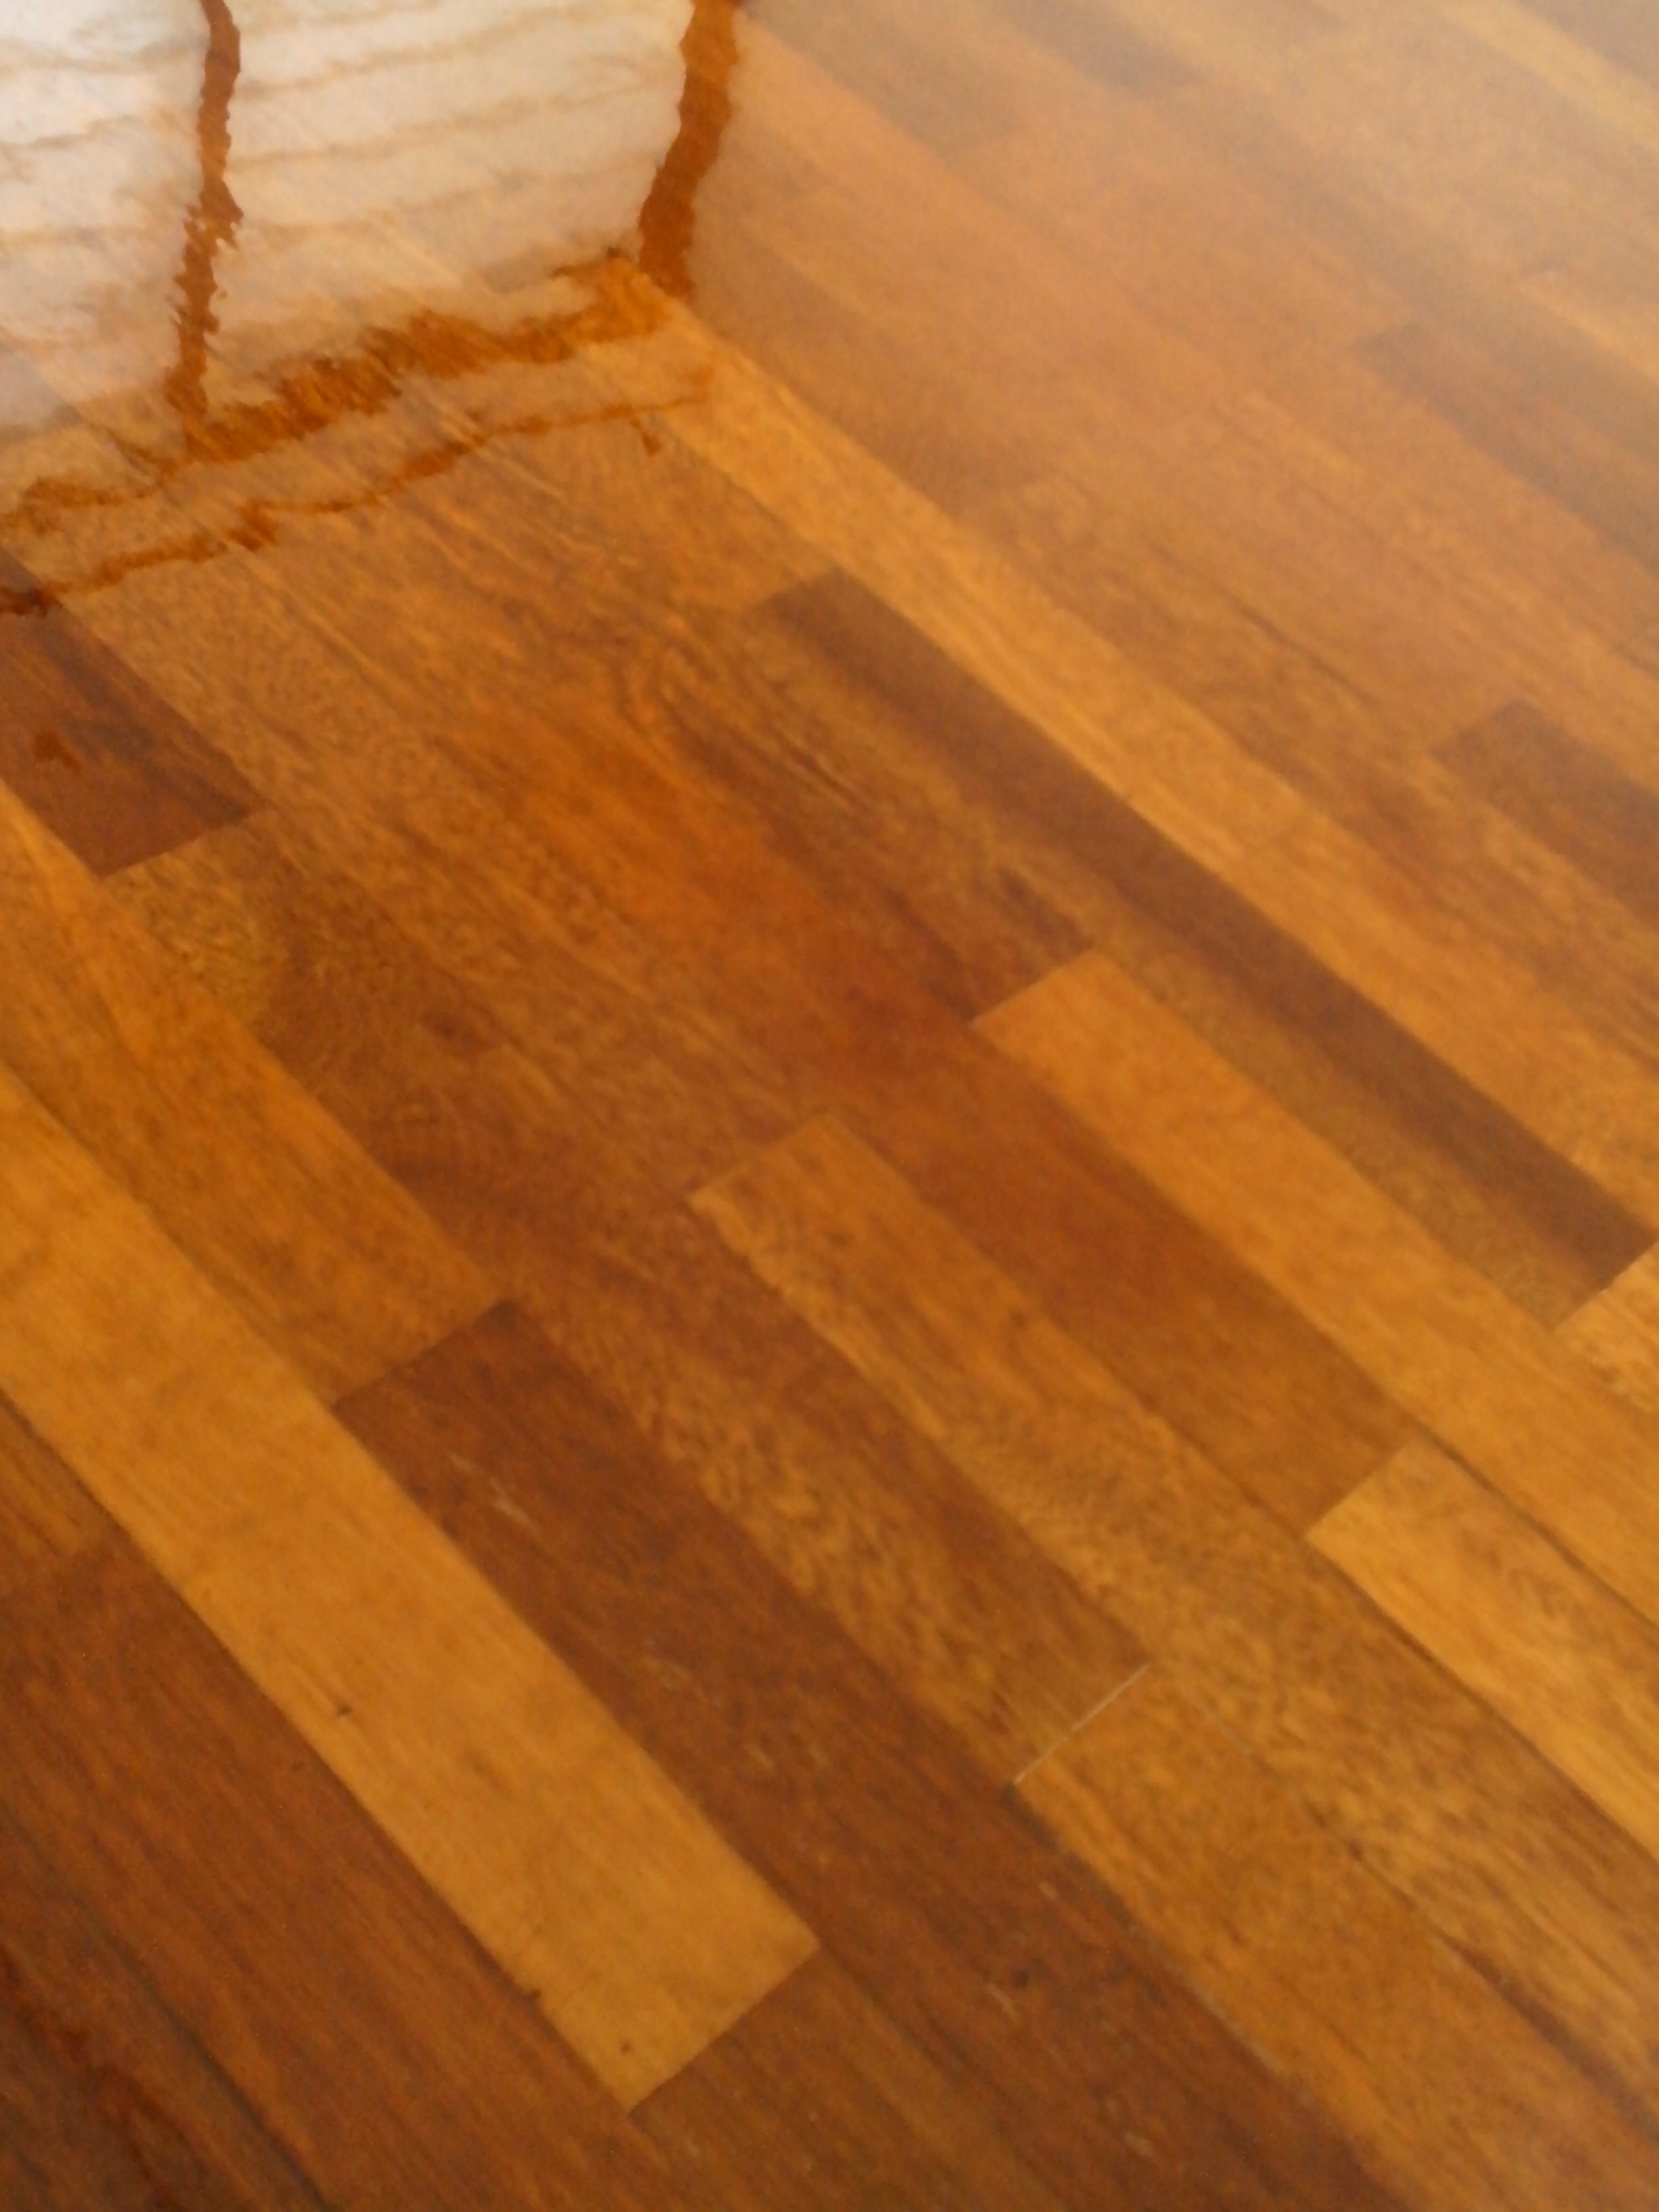 Laminate floor polish amazon flooring in georgia for Wood floor 90 degree turn